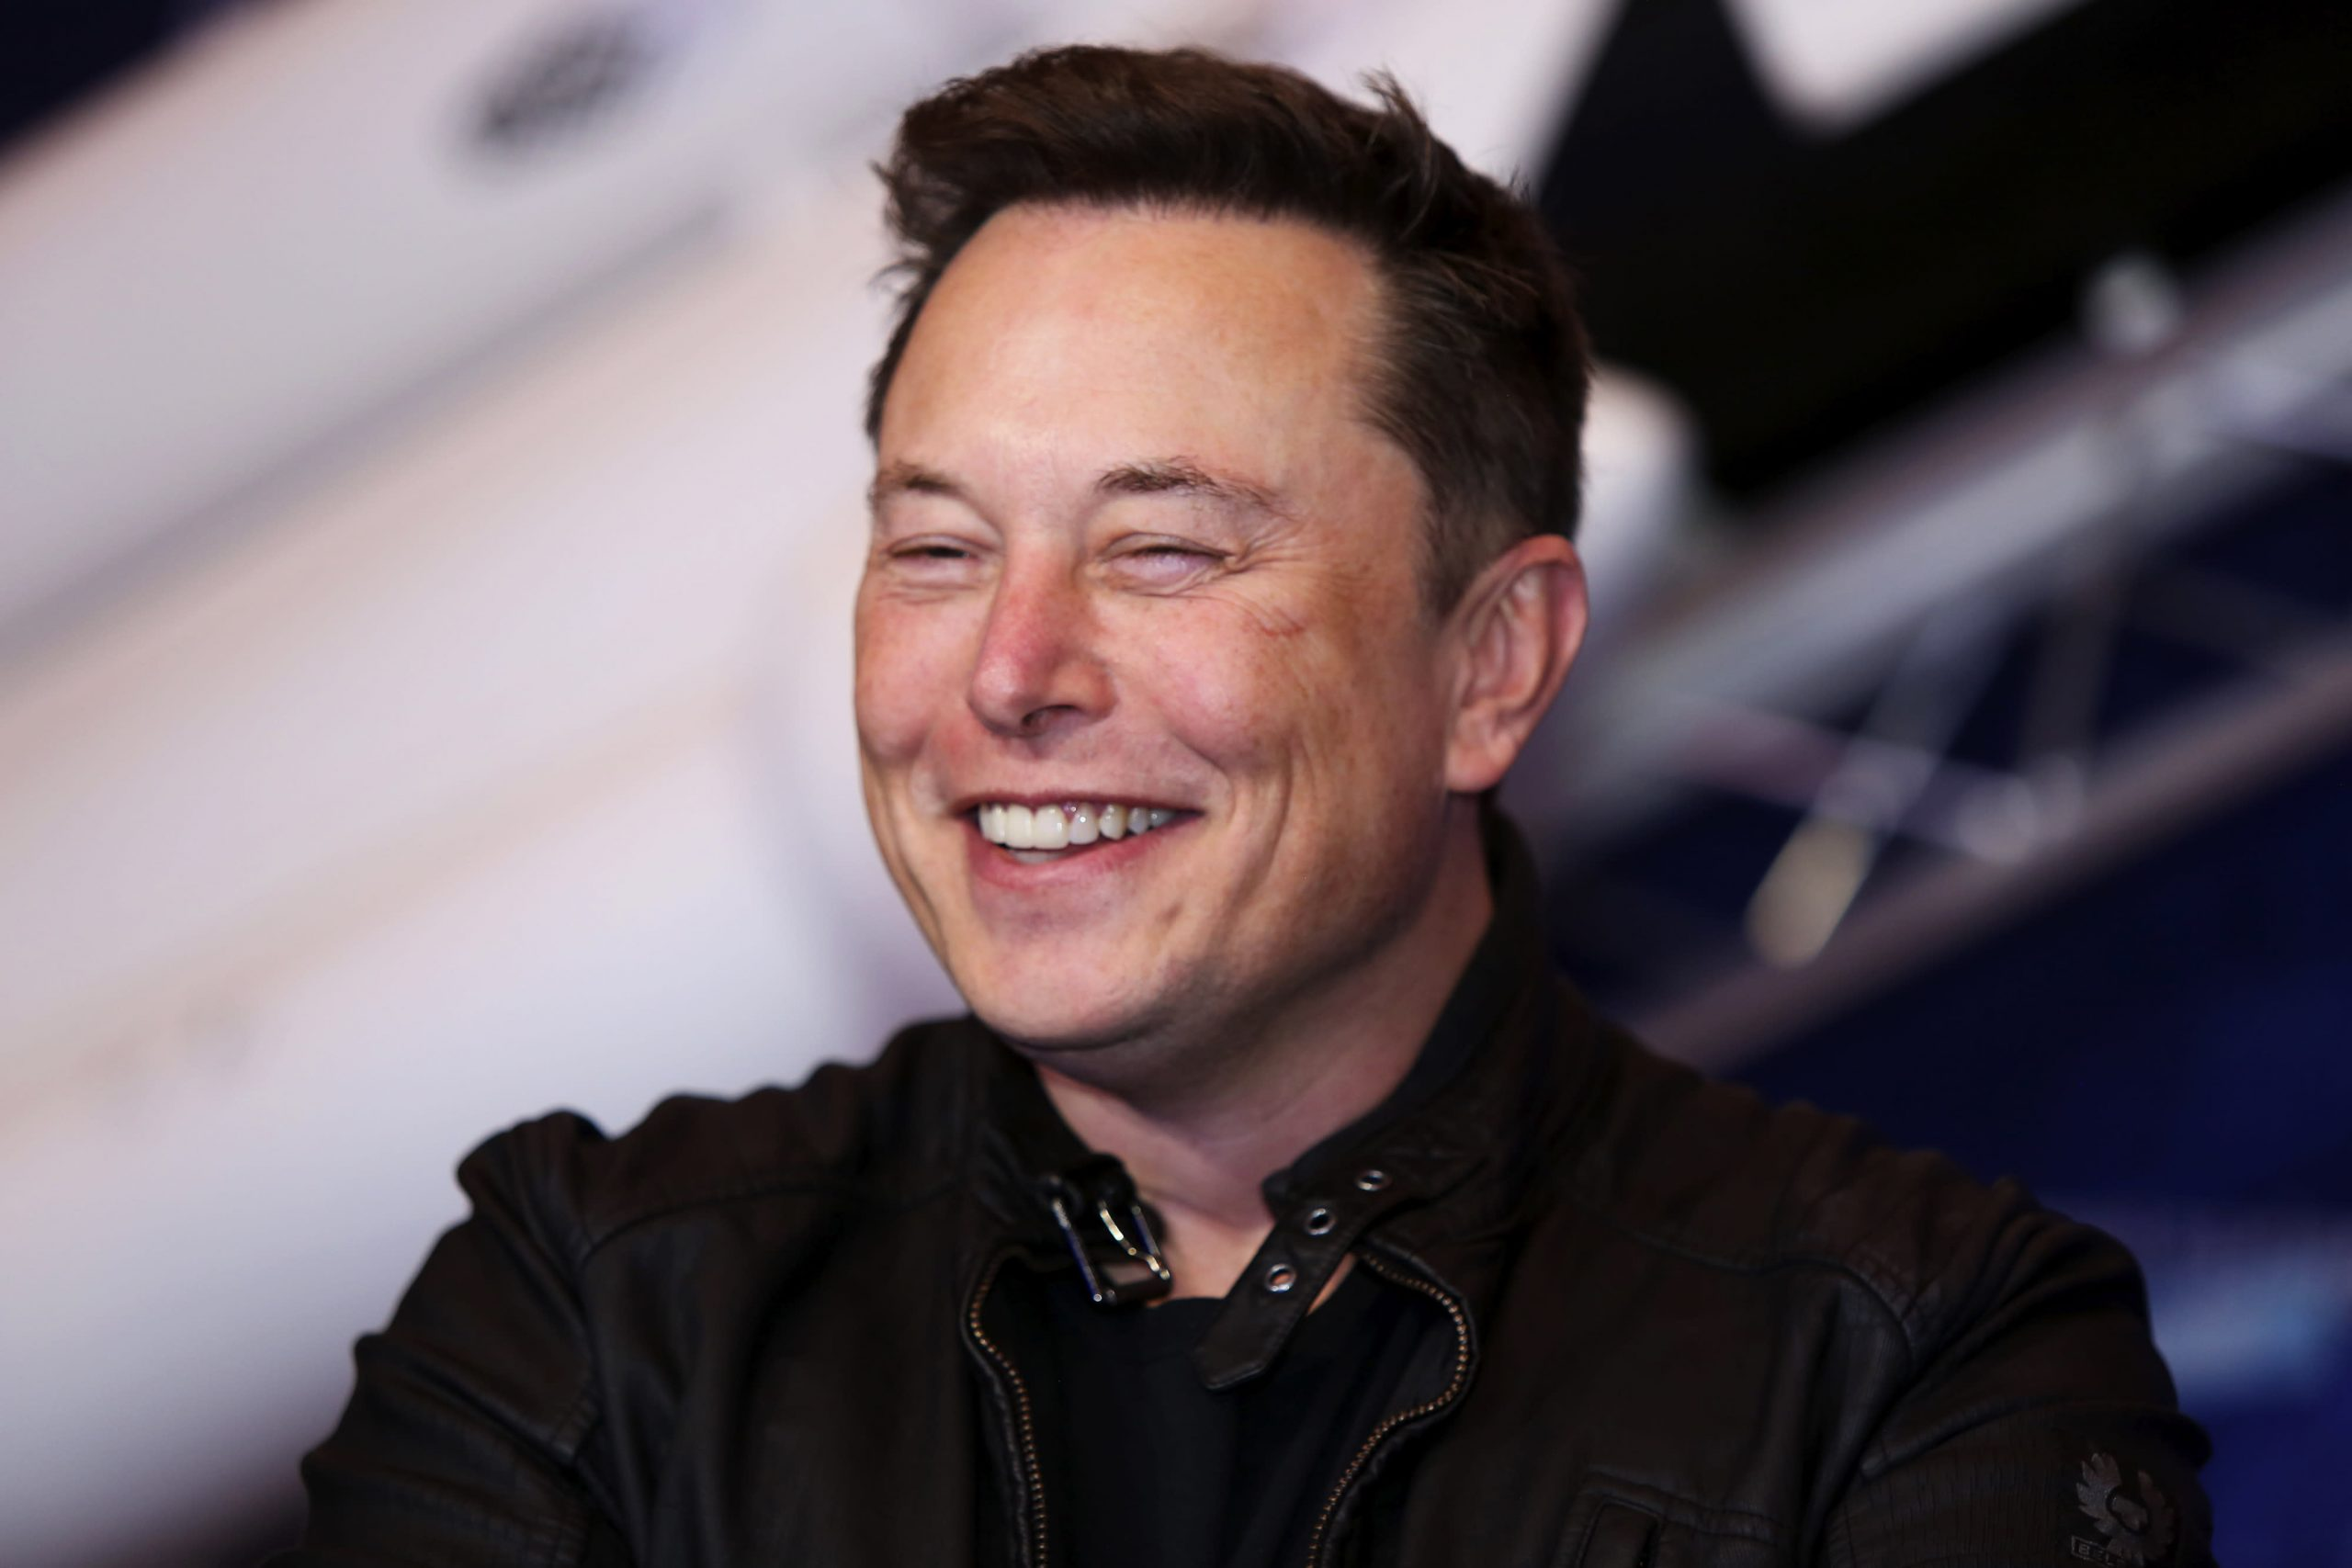 tesla-enters-the-sp-500-with-1-69-weighting-in-the-benchmark-fifth-largest